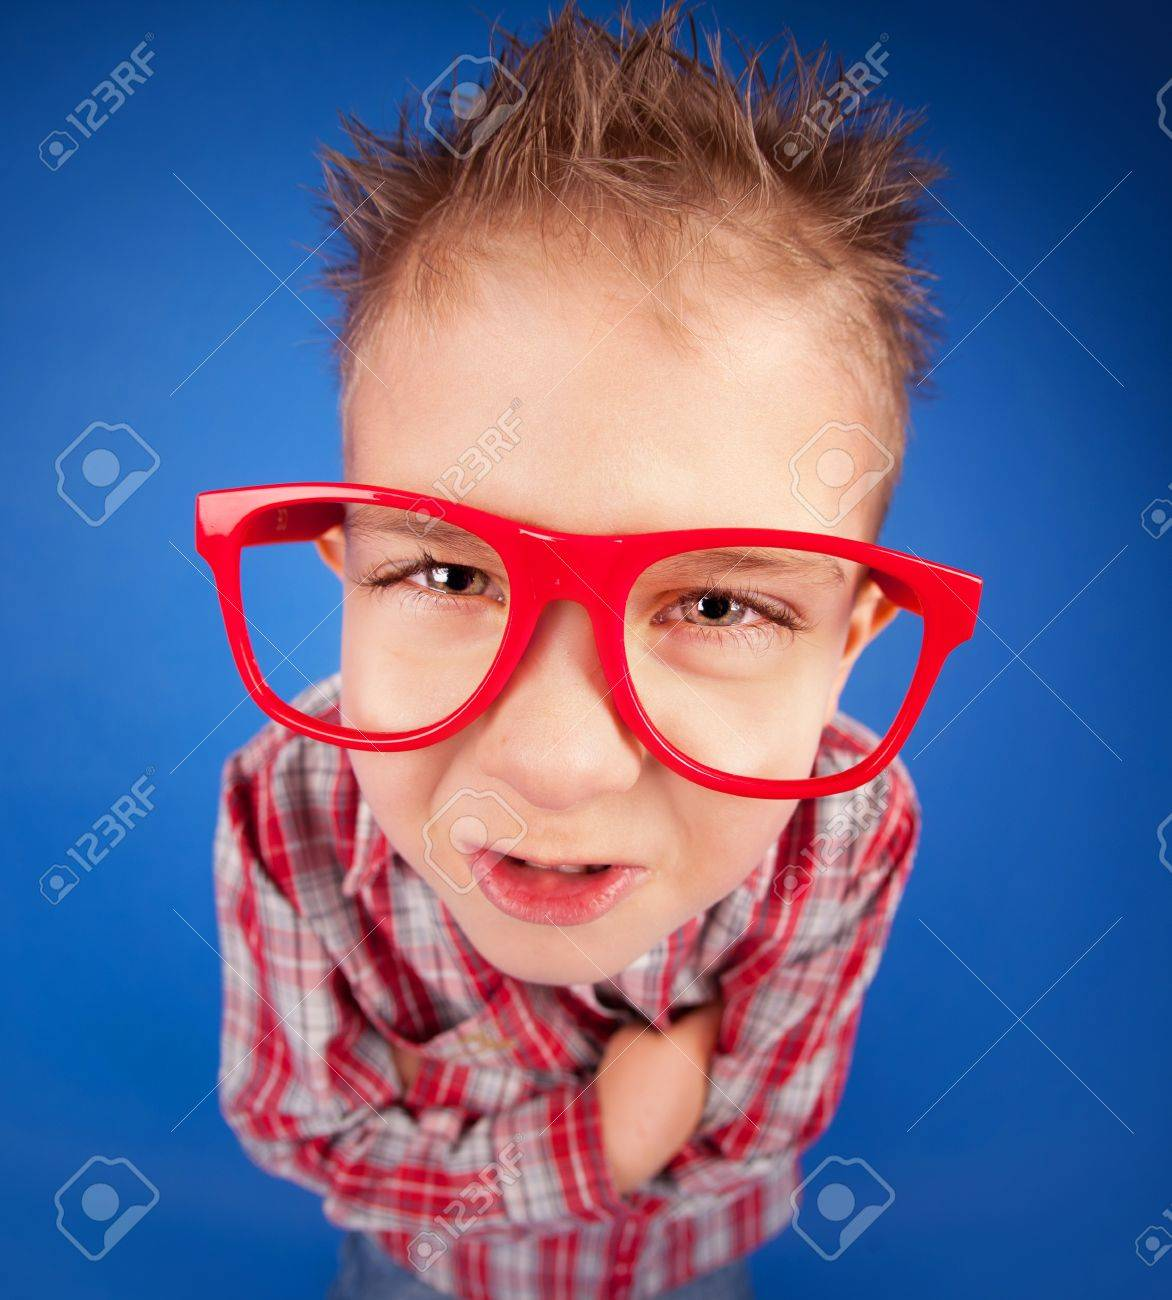 4a782f94098a Funny five years old boy with expressive face, misbehave concept Stock  Photo - 18057518